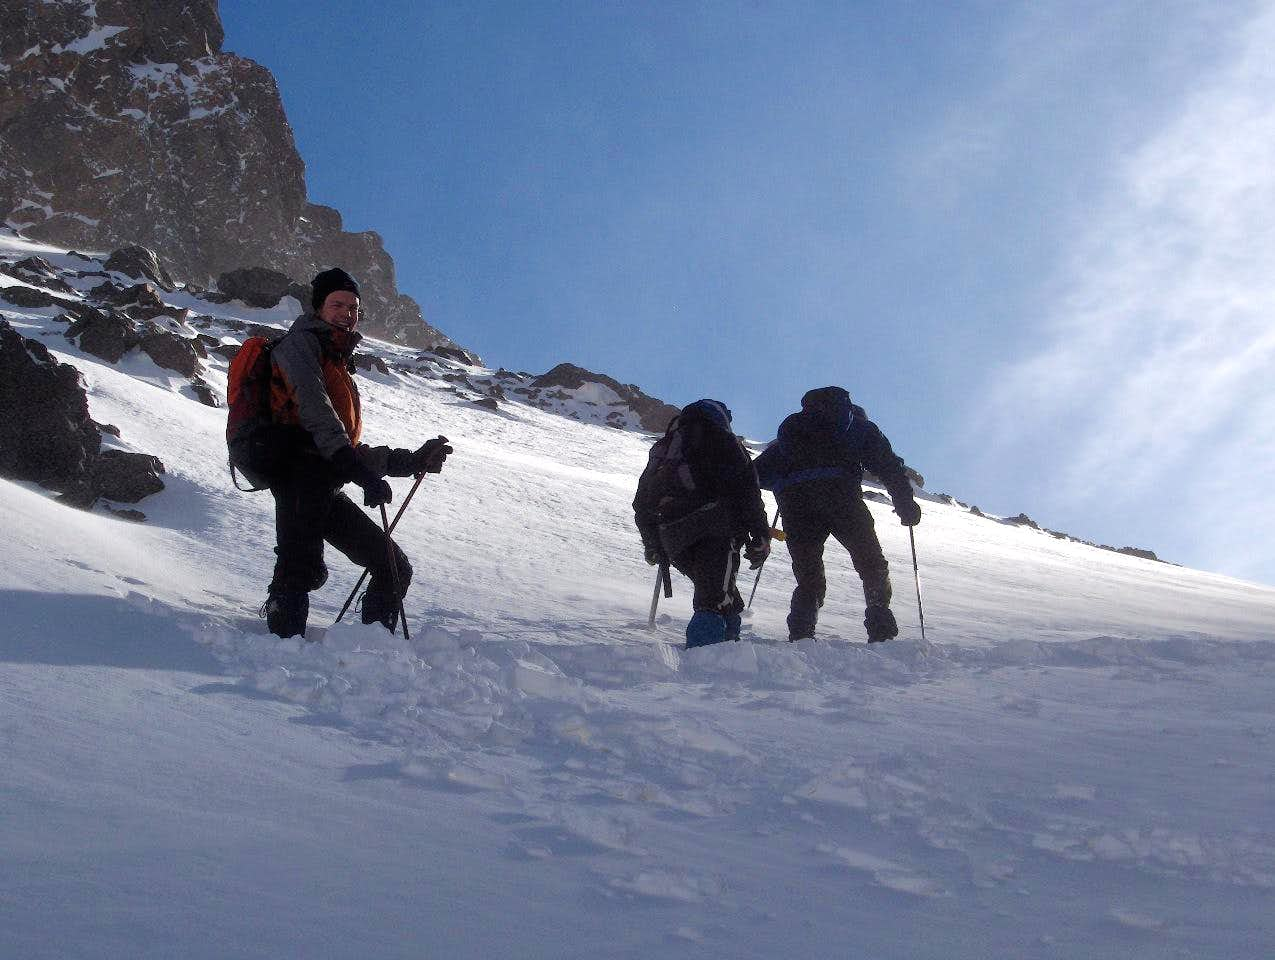 Winter in Morocco - snow, ice and crampons!